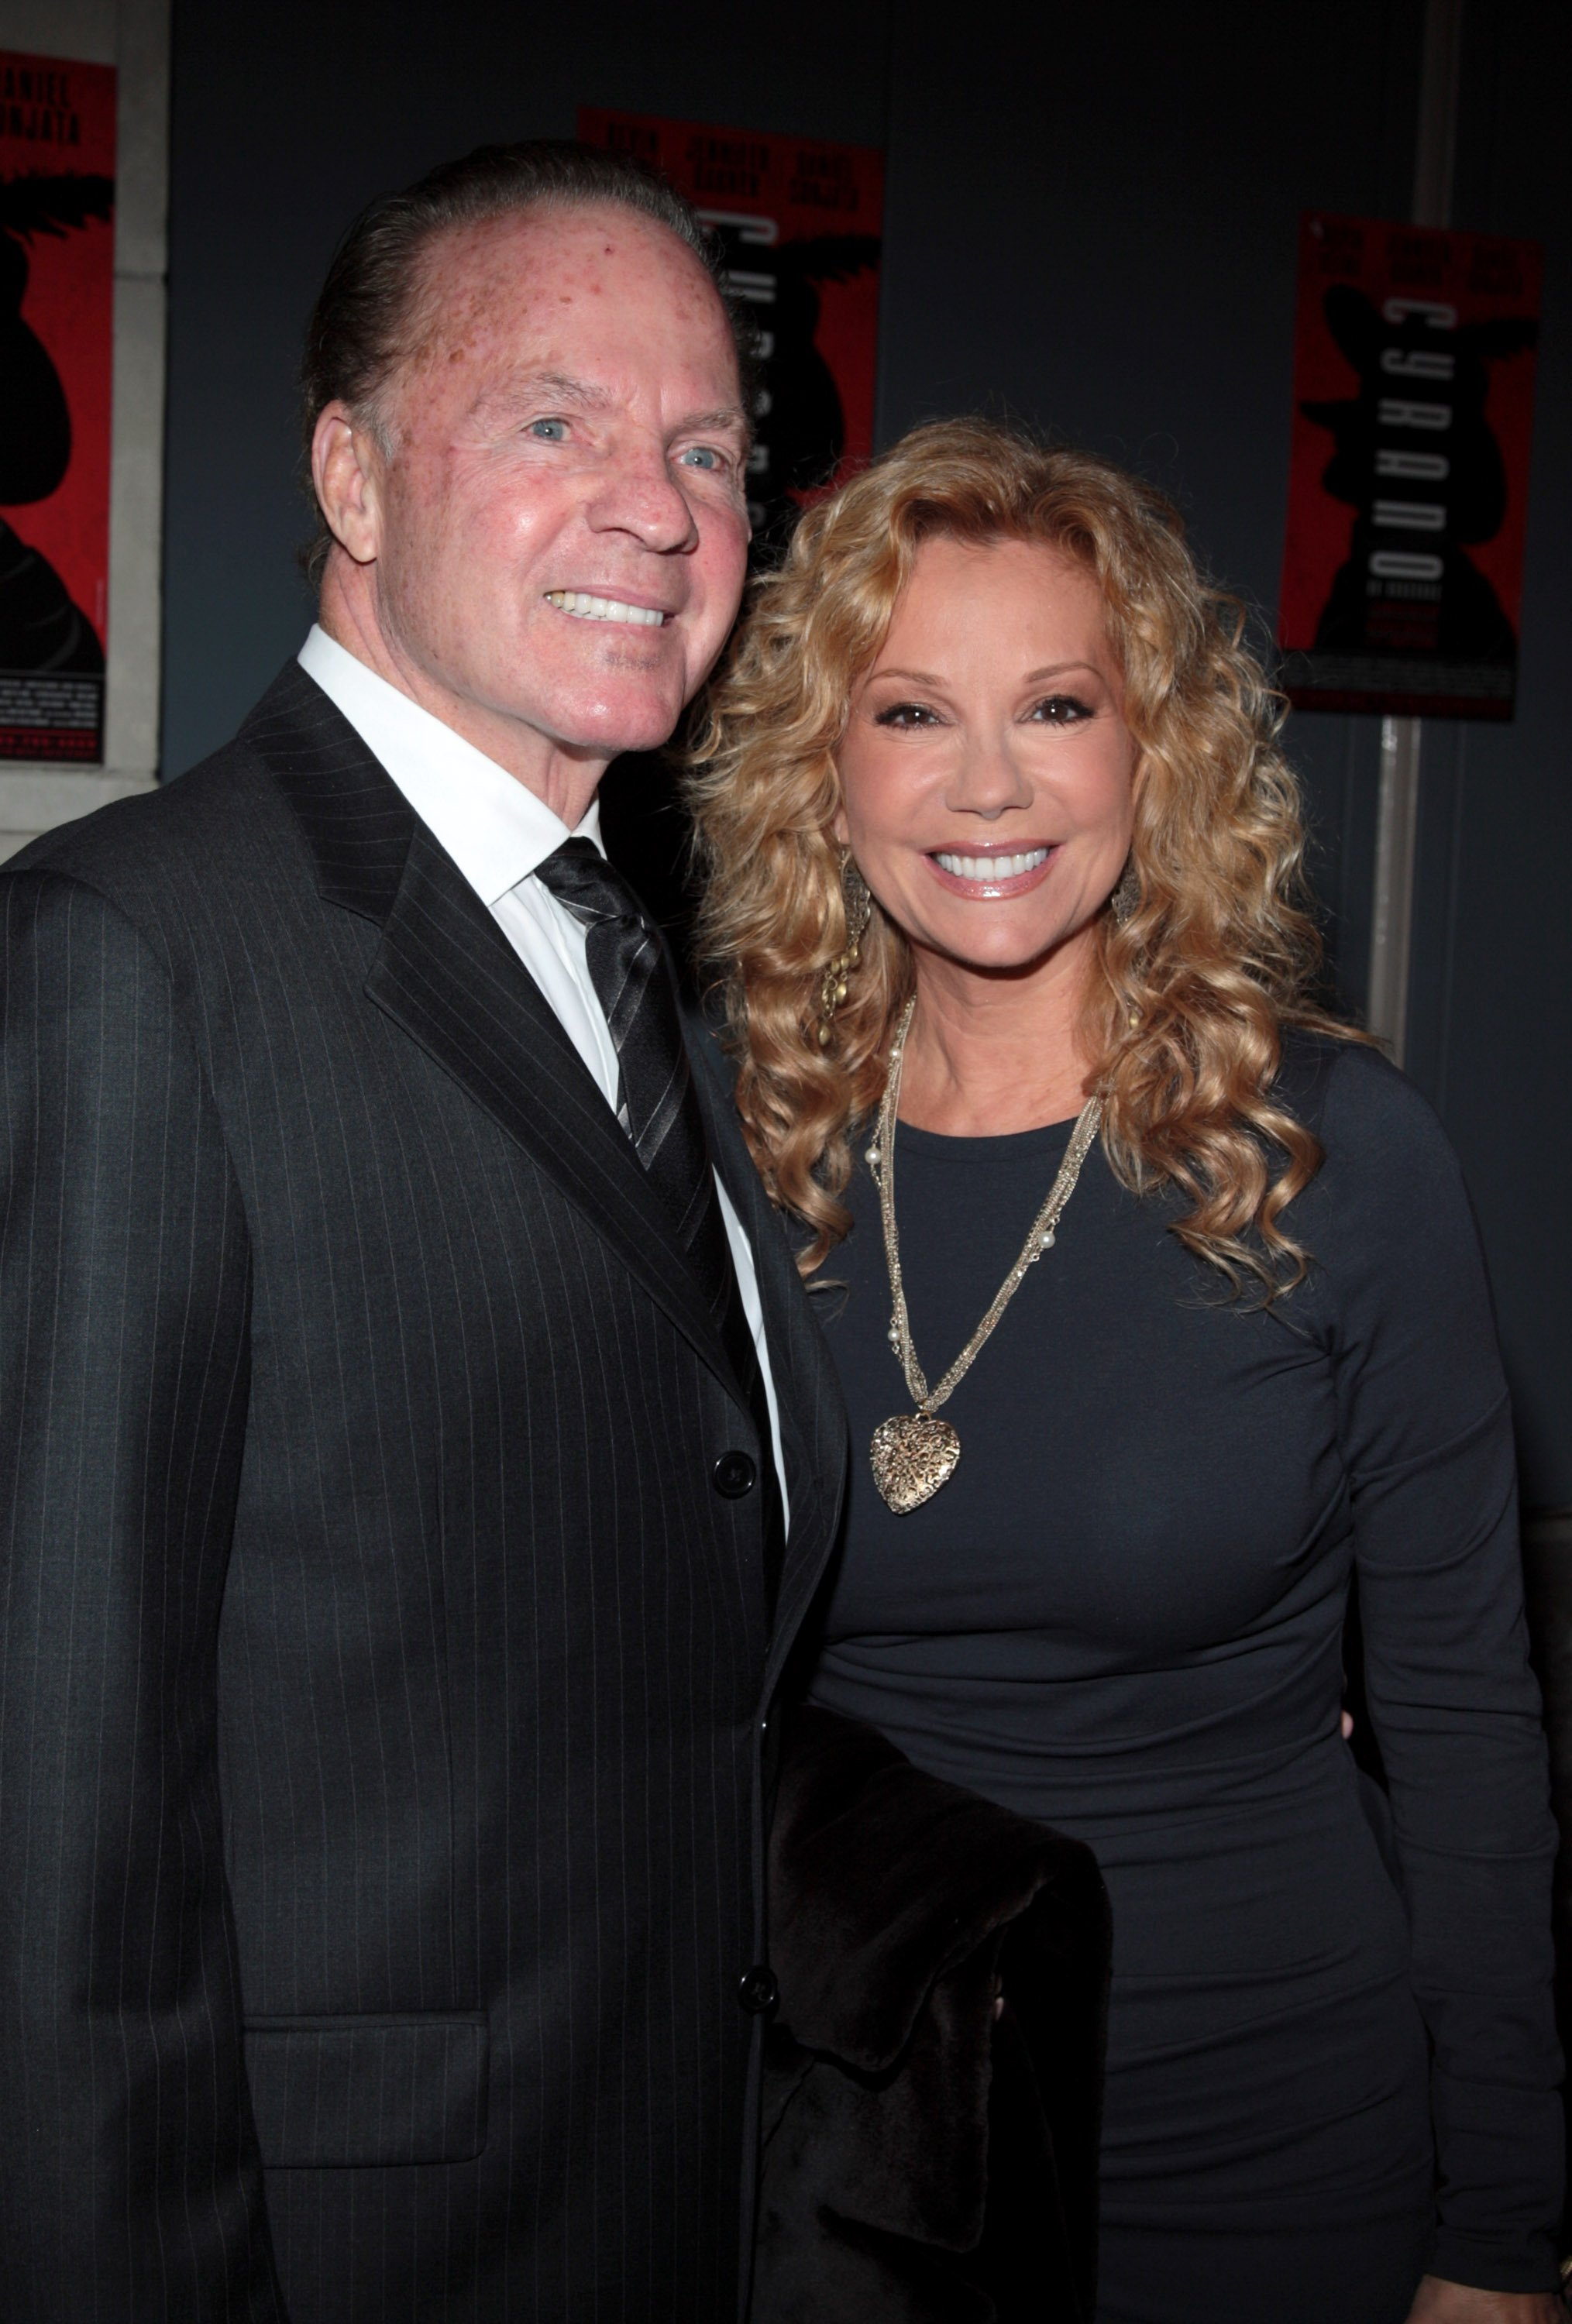 Kathie Lee Gifford and her husband Frank Gifford | Photo: Getty Images